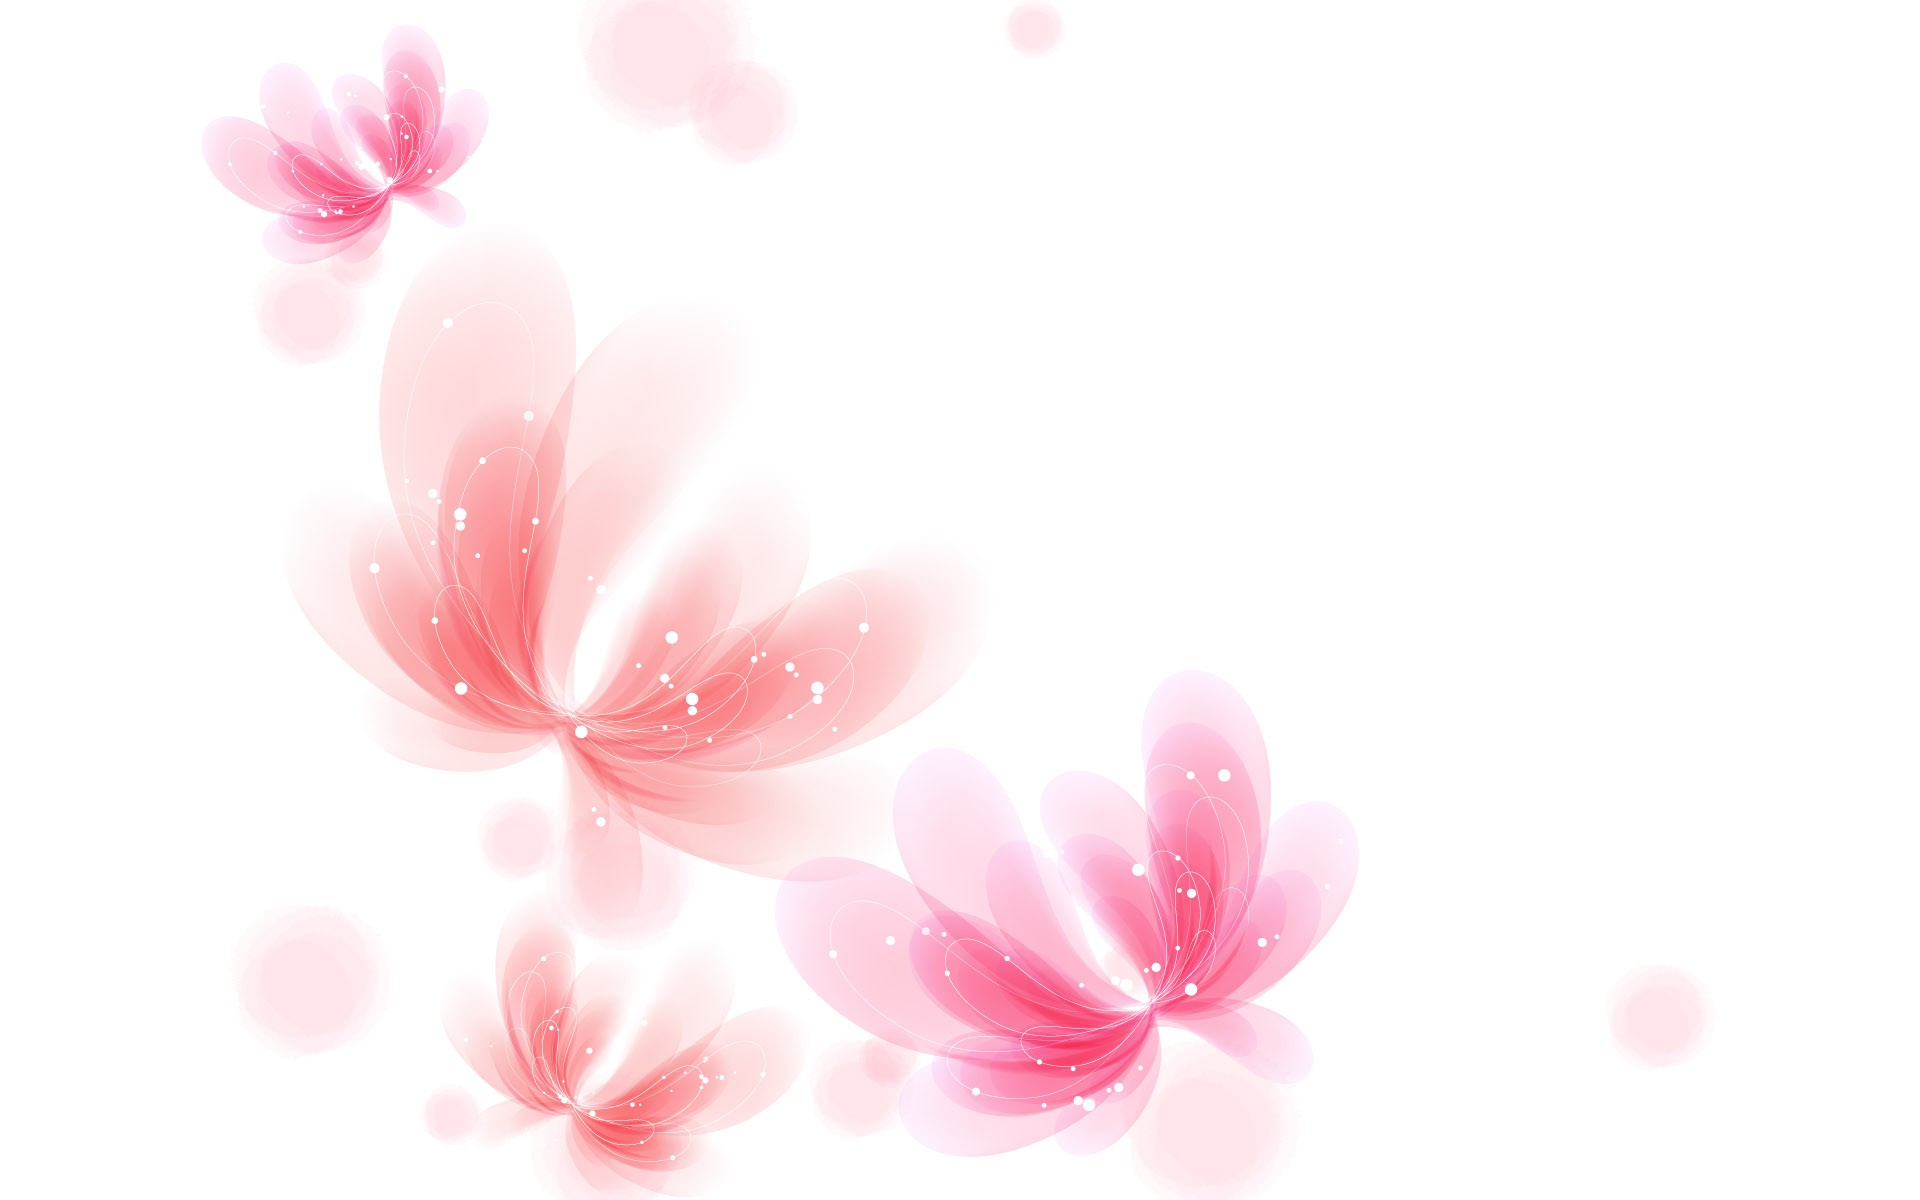 Pink White Wallpaper 19201200 Pink White Background 1920x1200